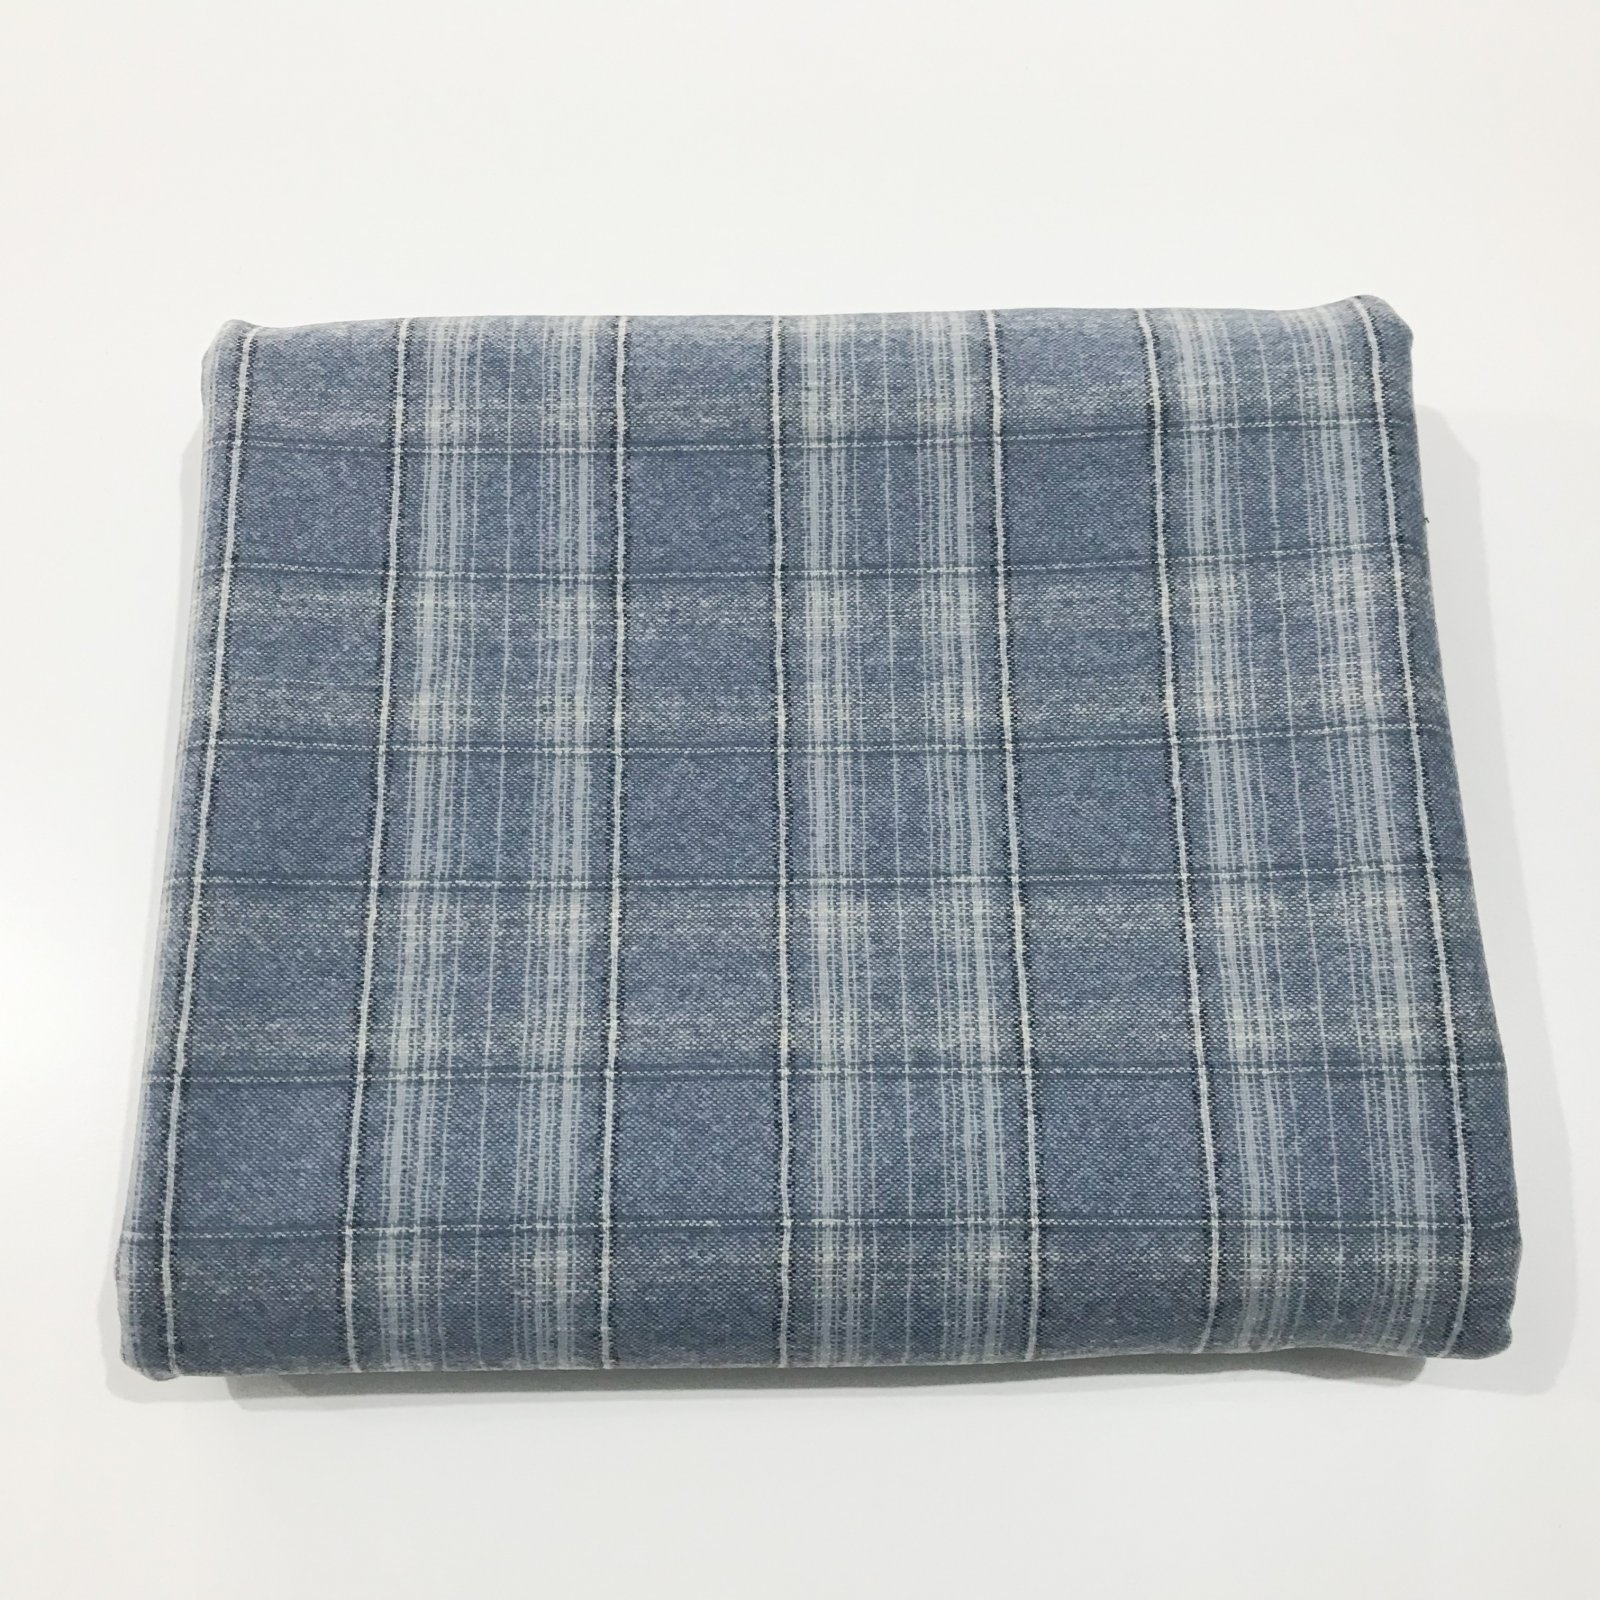 1 yard + 21 inches  - Pendleton (TM) Dusty Blue Plaid